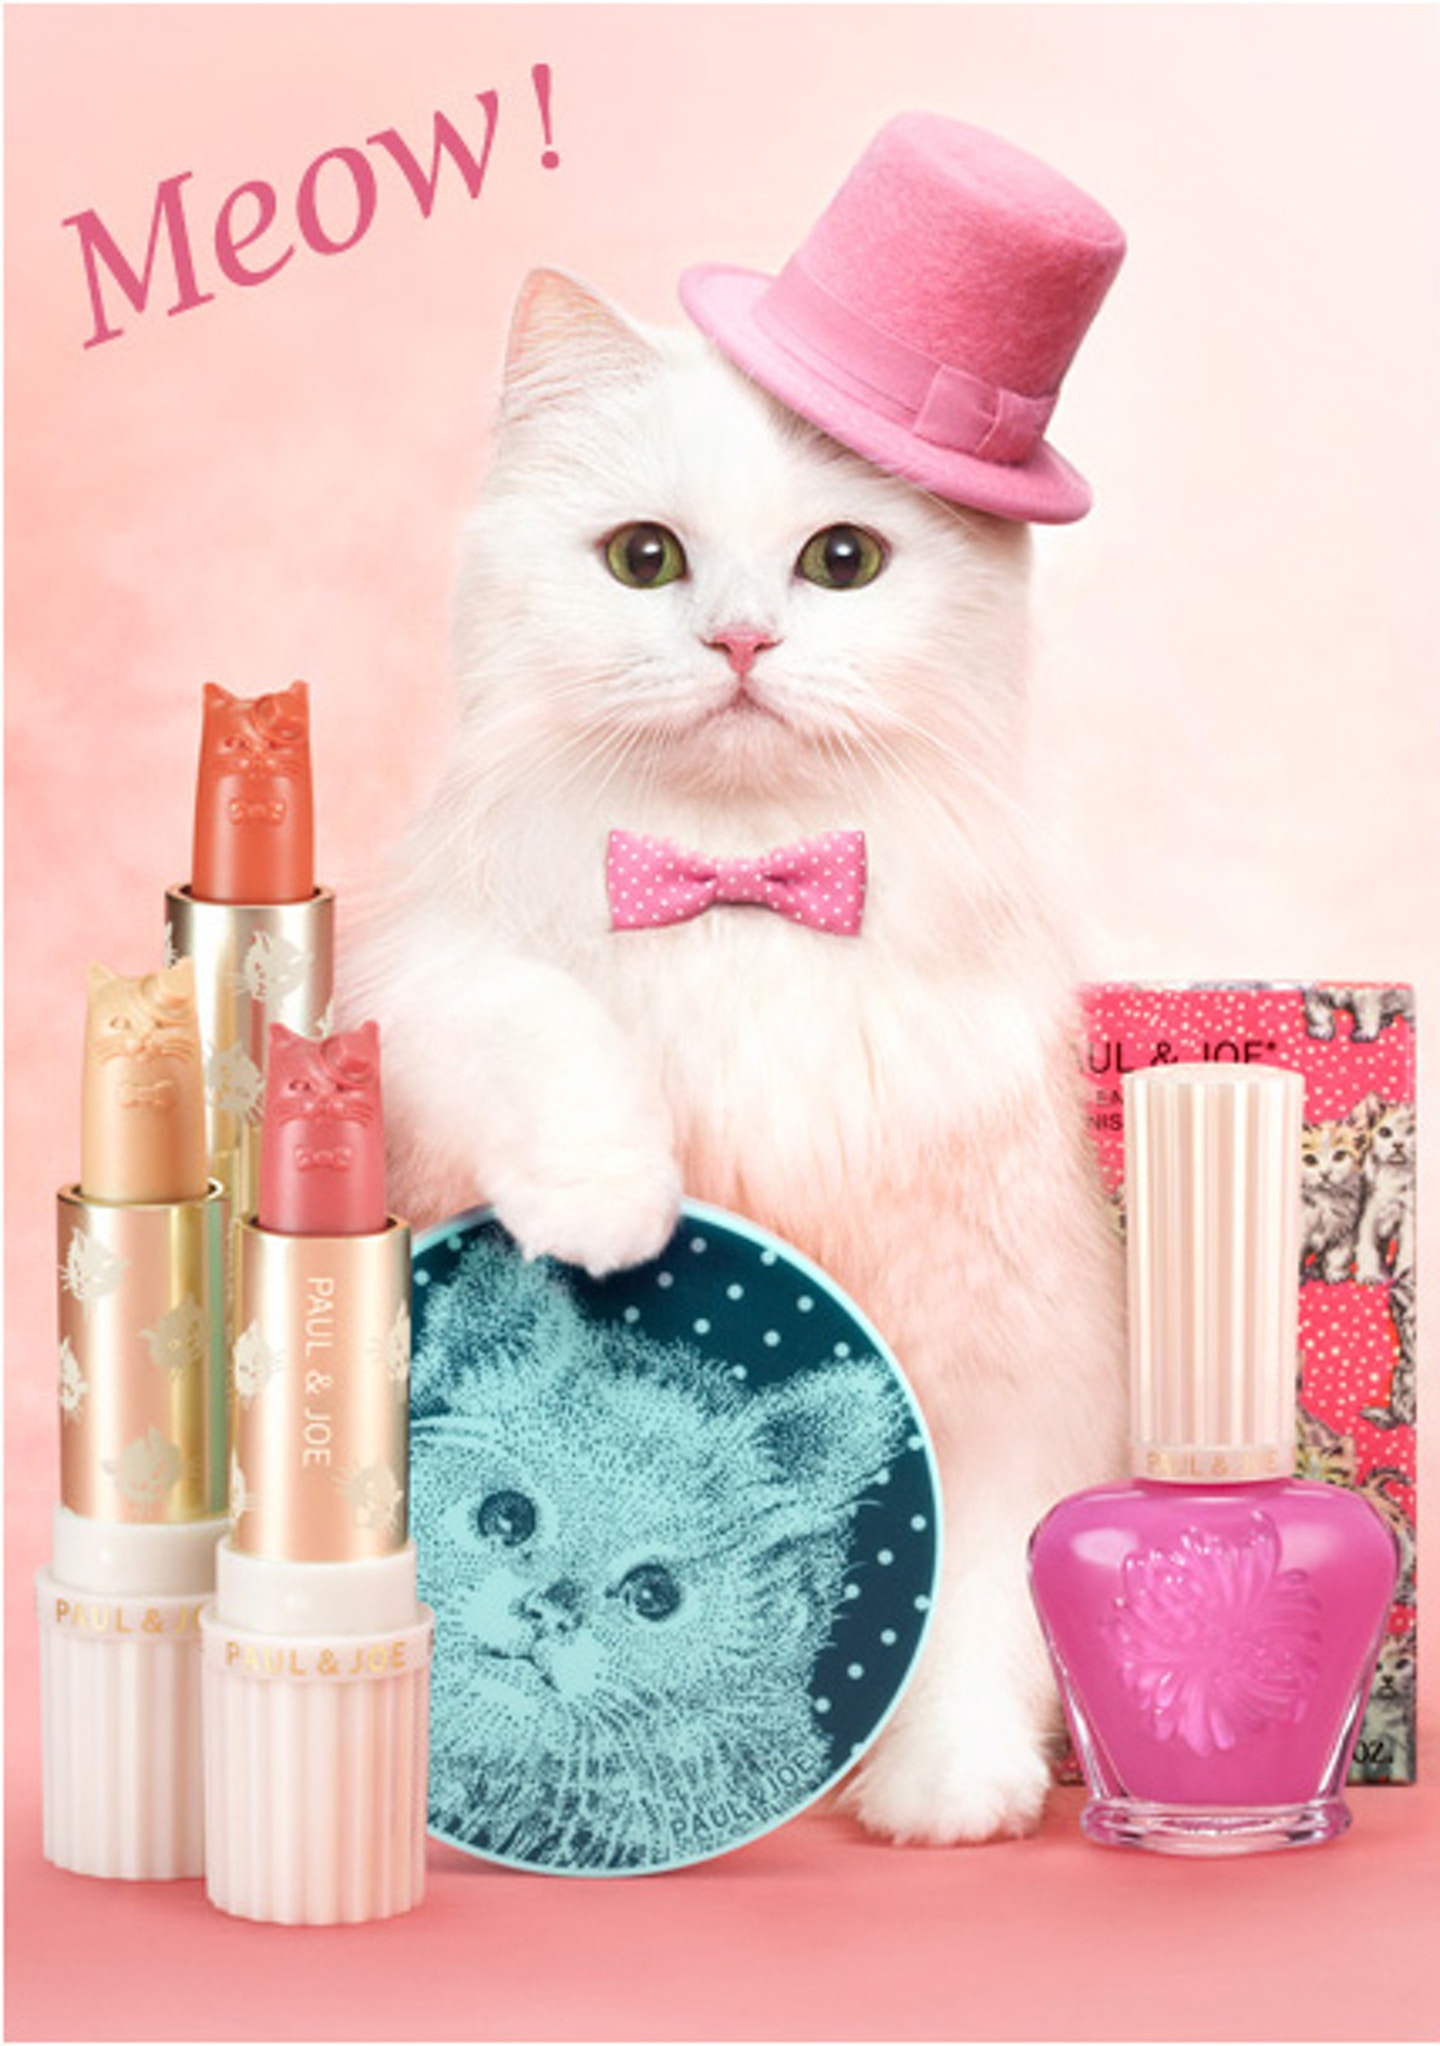 Meow! Paul & Joe Beauté Spring Makeup Campaign